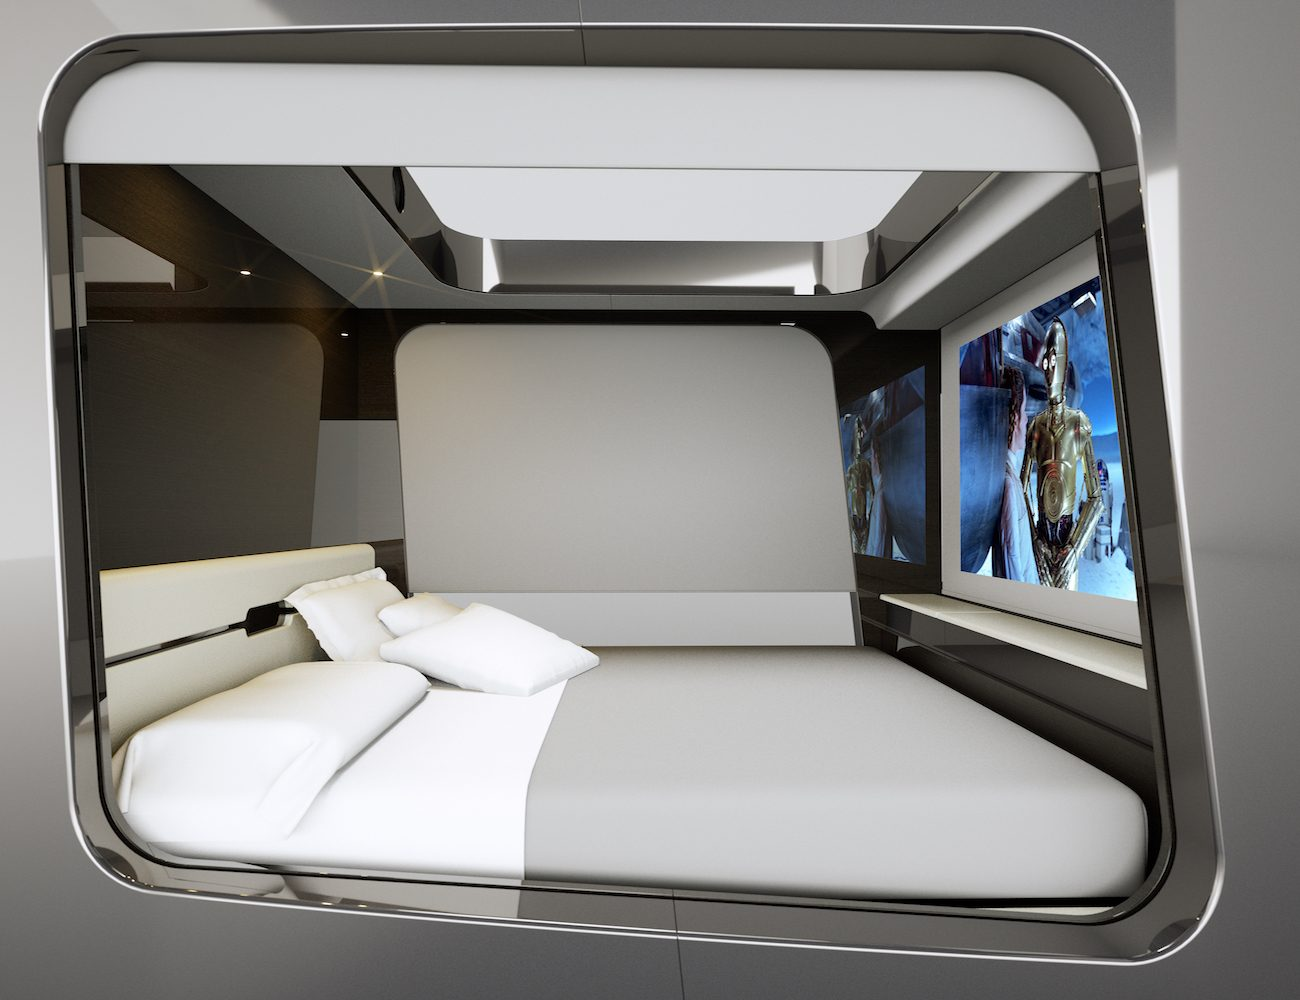 HiCan – Revolutionary Smart Bed